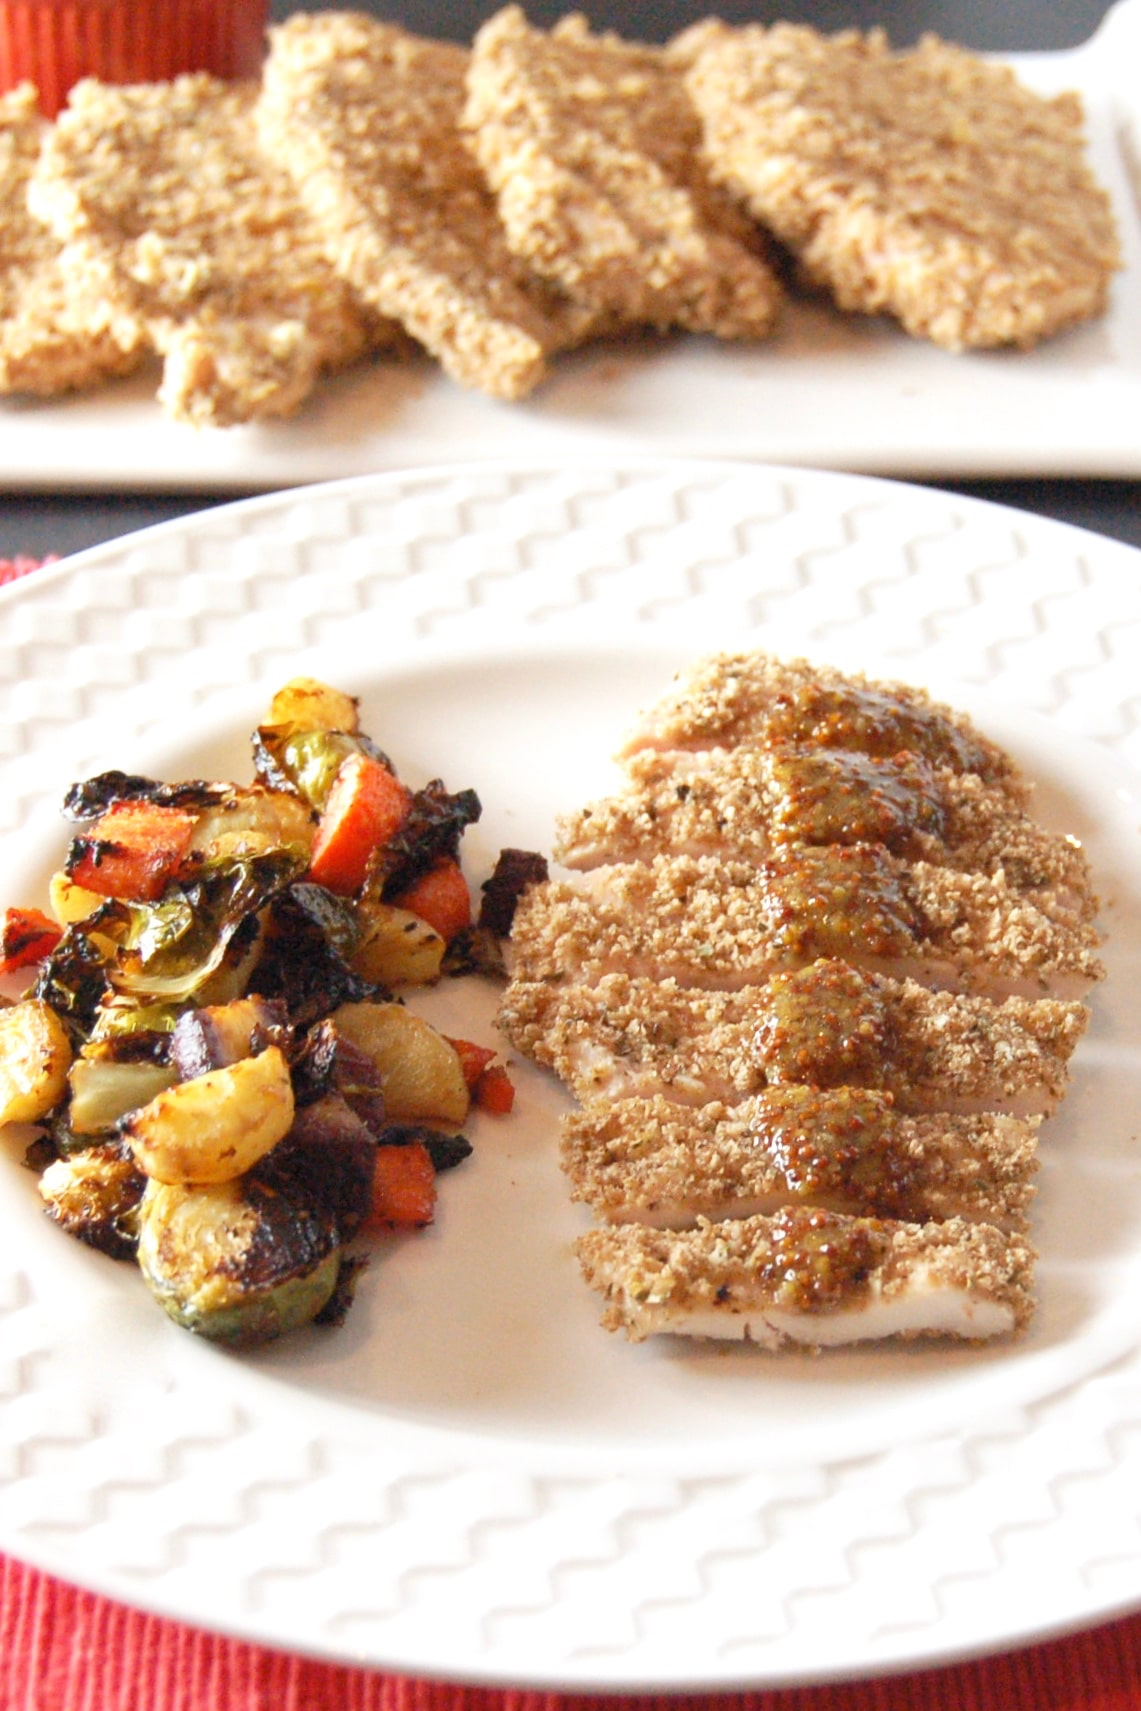 Satisfy your kids' cravings for chicken fingers in a healthier way with this crispy whole grain baked panko crusted chicken. Serve with a simple honey mustard sauce for a dinner the whole family will love. Get the dairy-free, nut-free recipe at Small Bites by Jessica